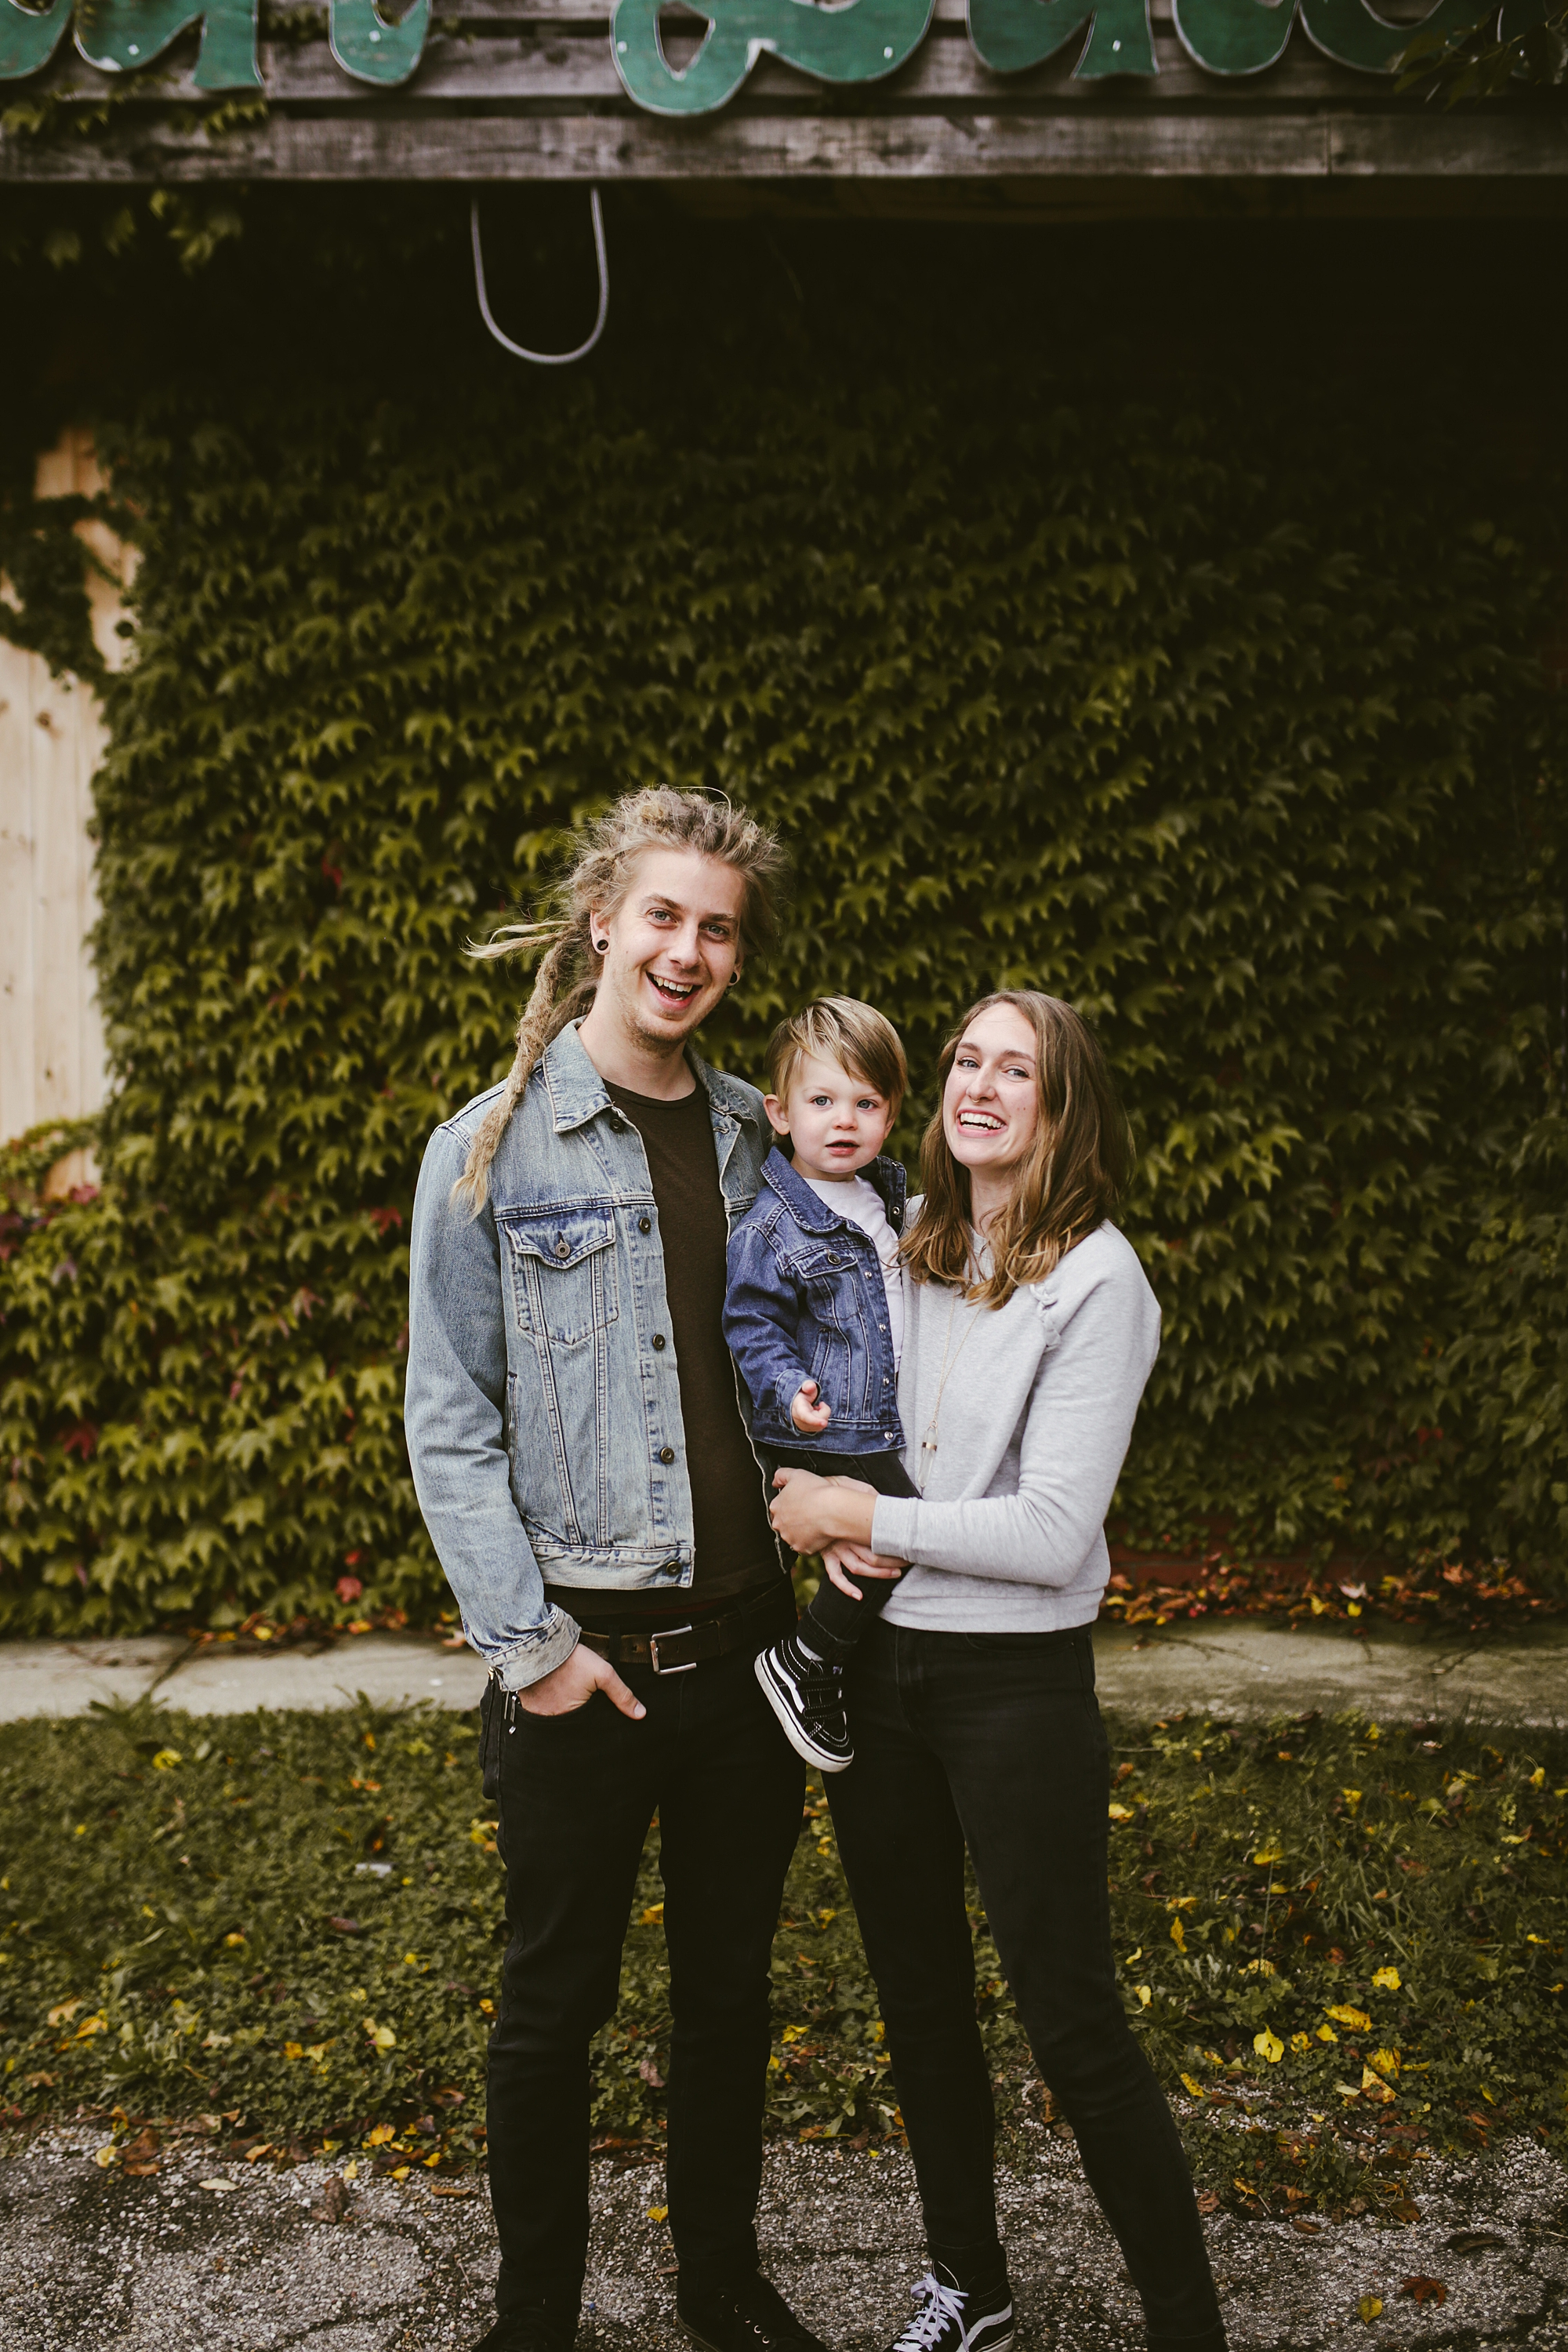 Huff Photography - Orcutt Family_0004.jpg